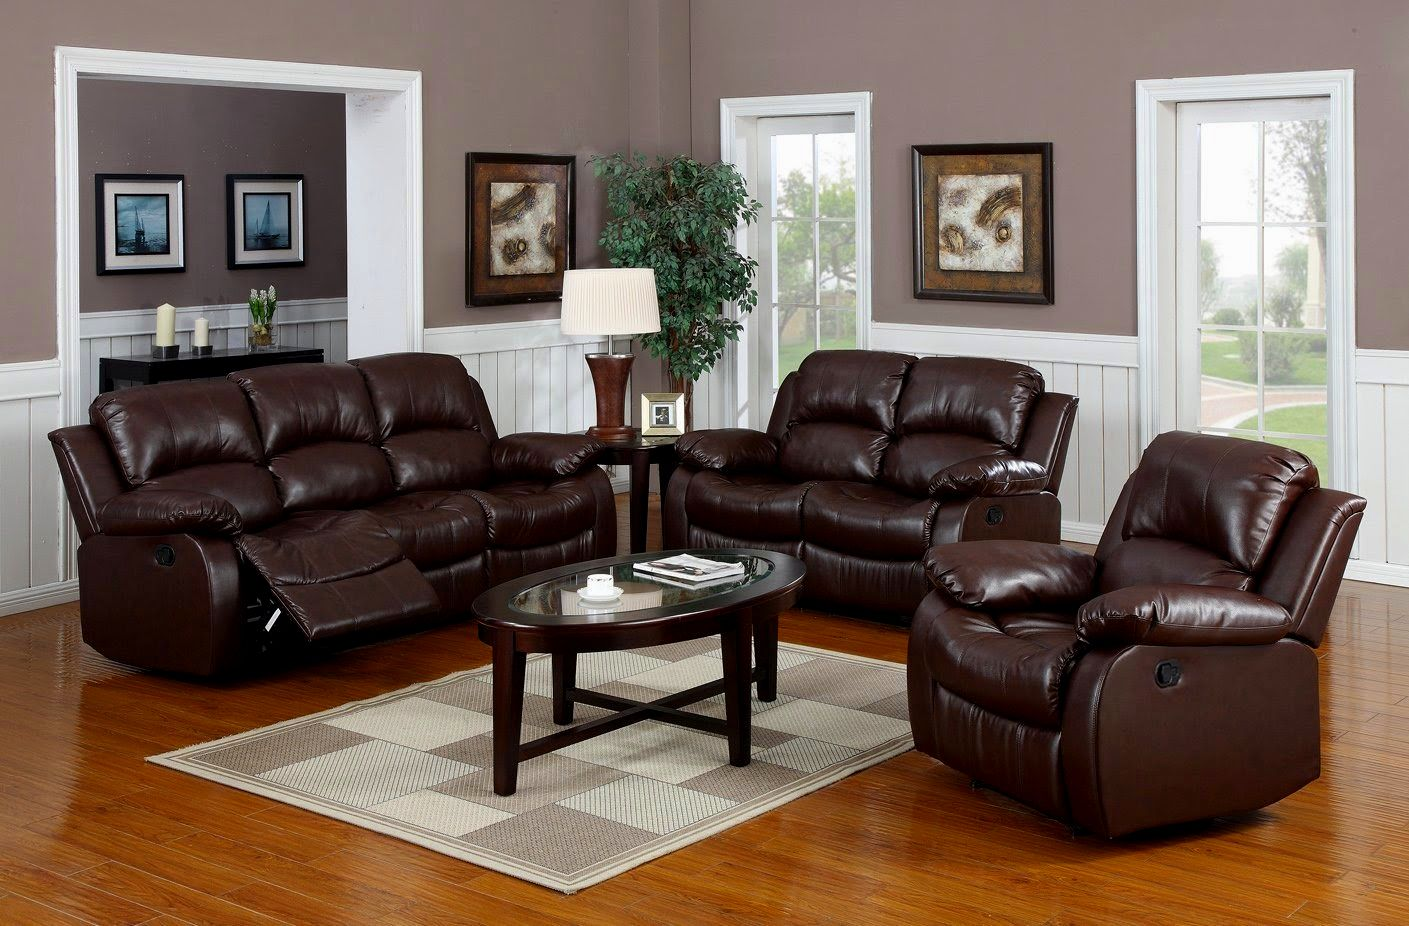 best room and board sofa collection-Stylish Room and Board sofa Décor